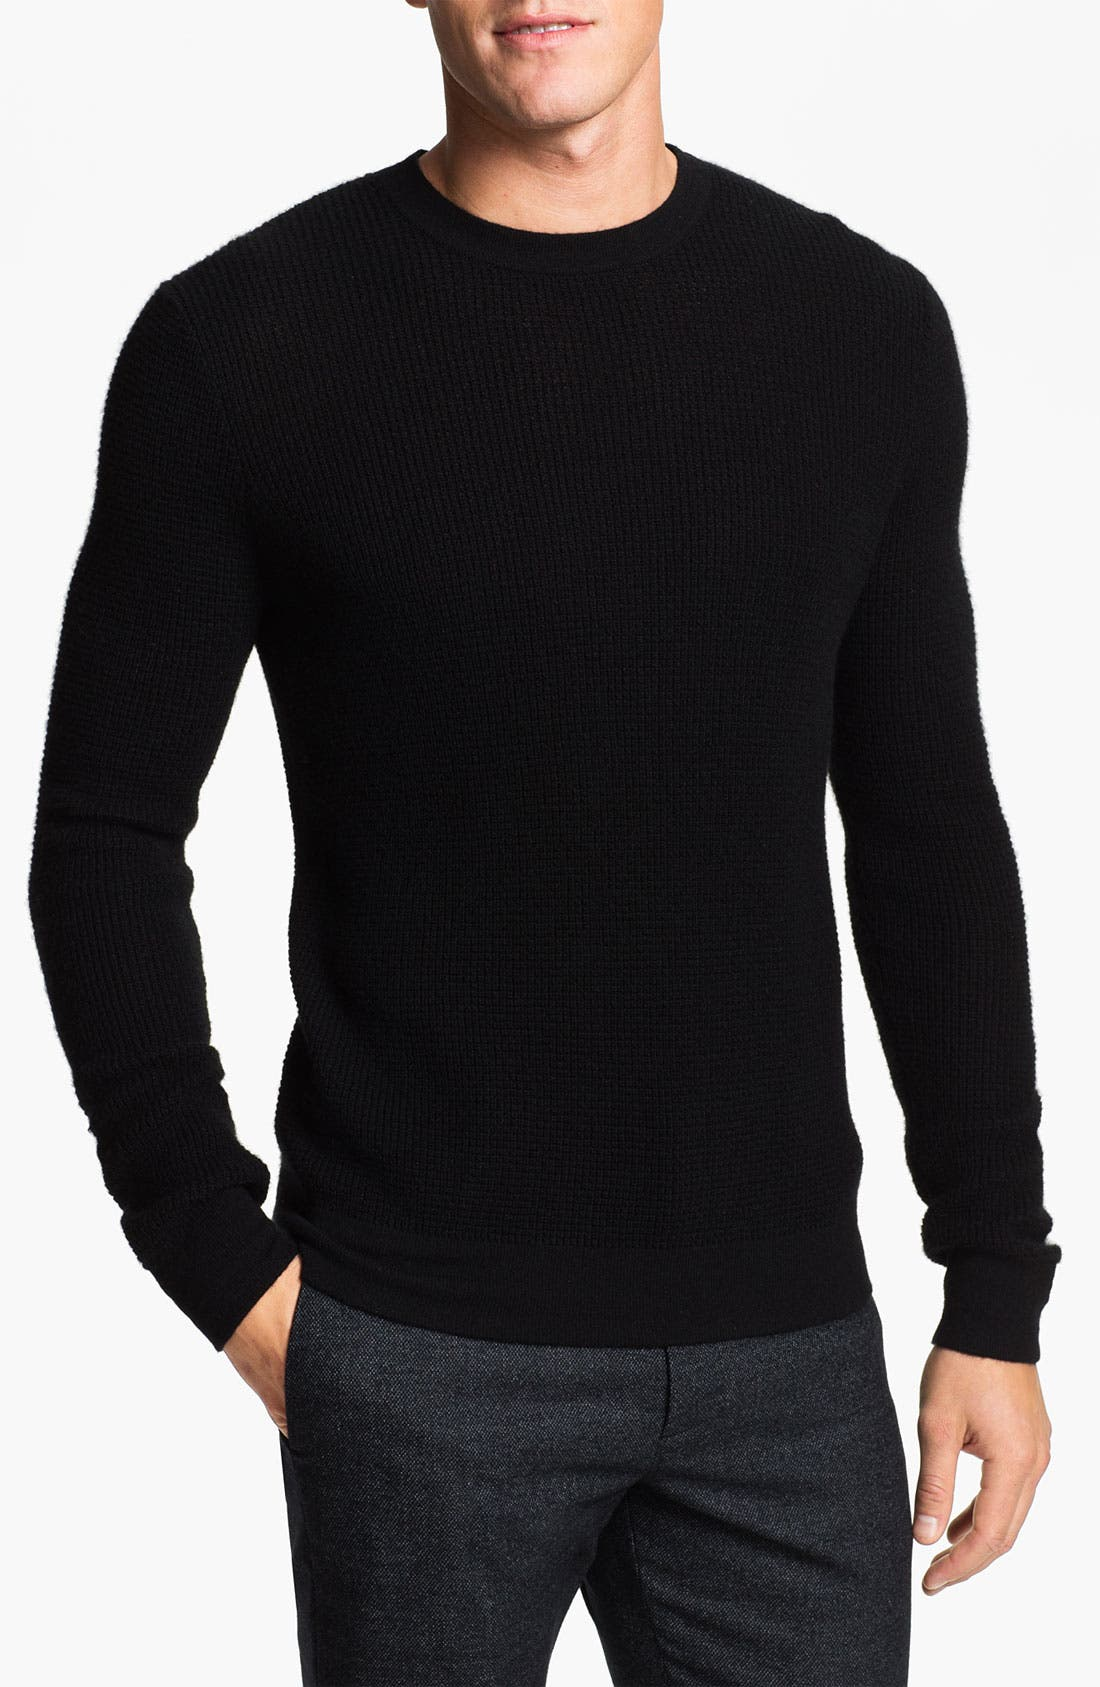 Alternate Image 1 Selected - Theory Waffle Knit Cashmere Crewneck Sweater